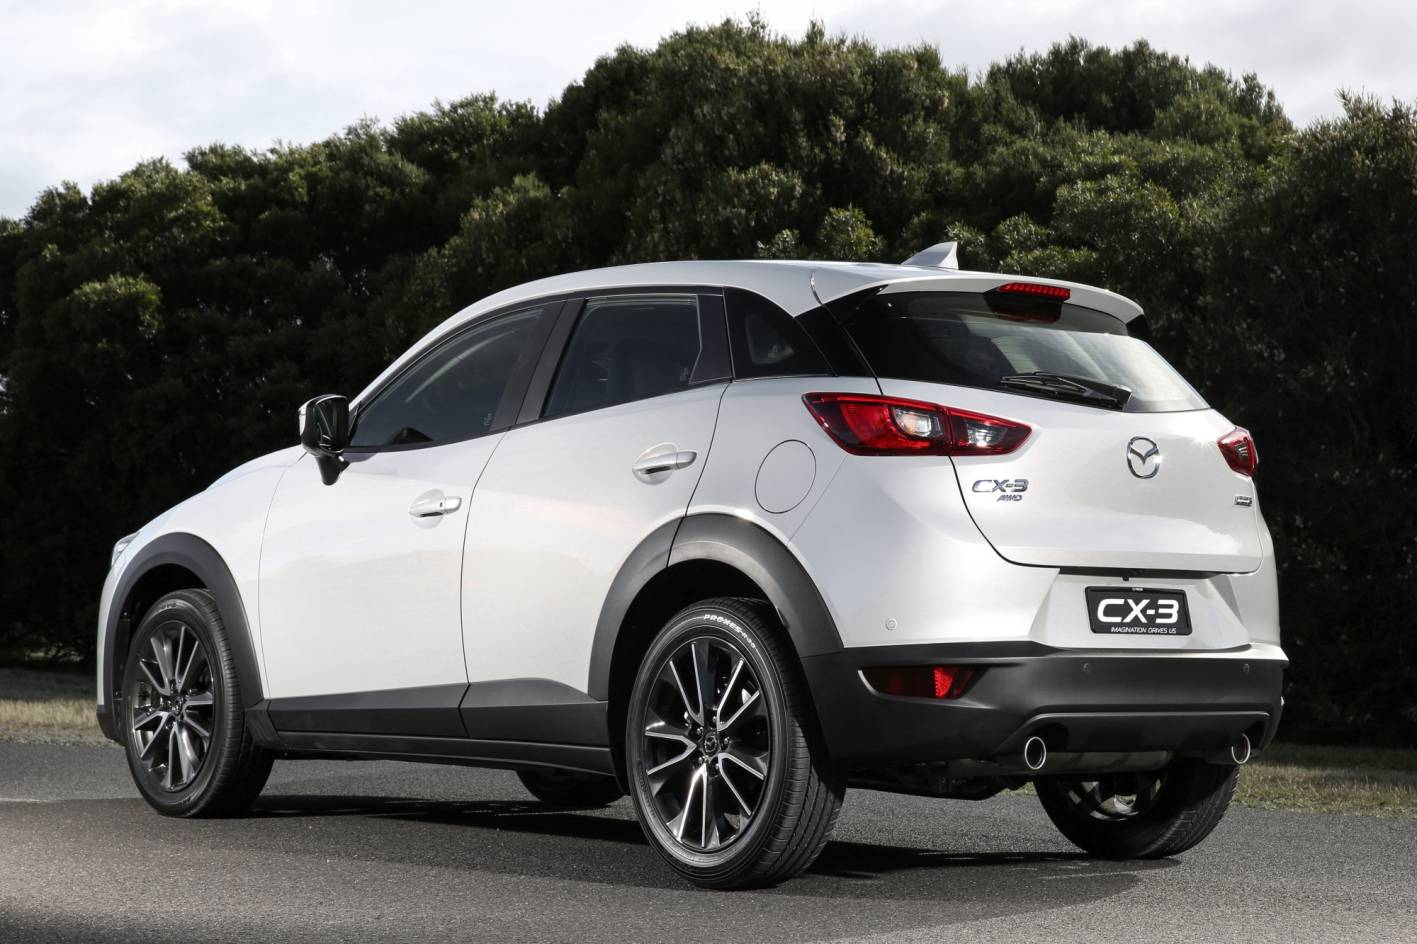 mazda cars news all new cx 3 technical details announced. Black Bedroom Furniture Sets. Home Design Ideas